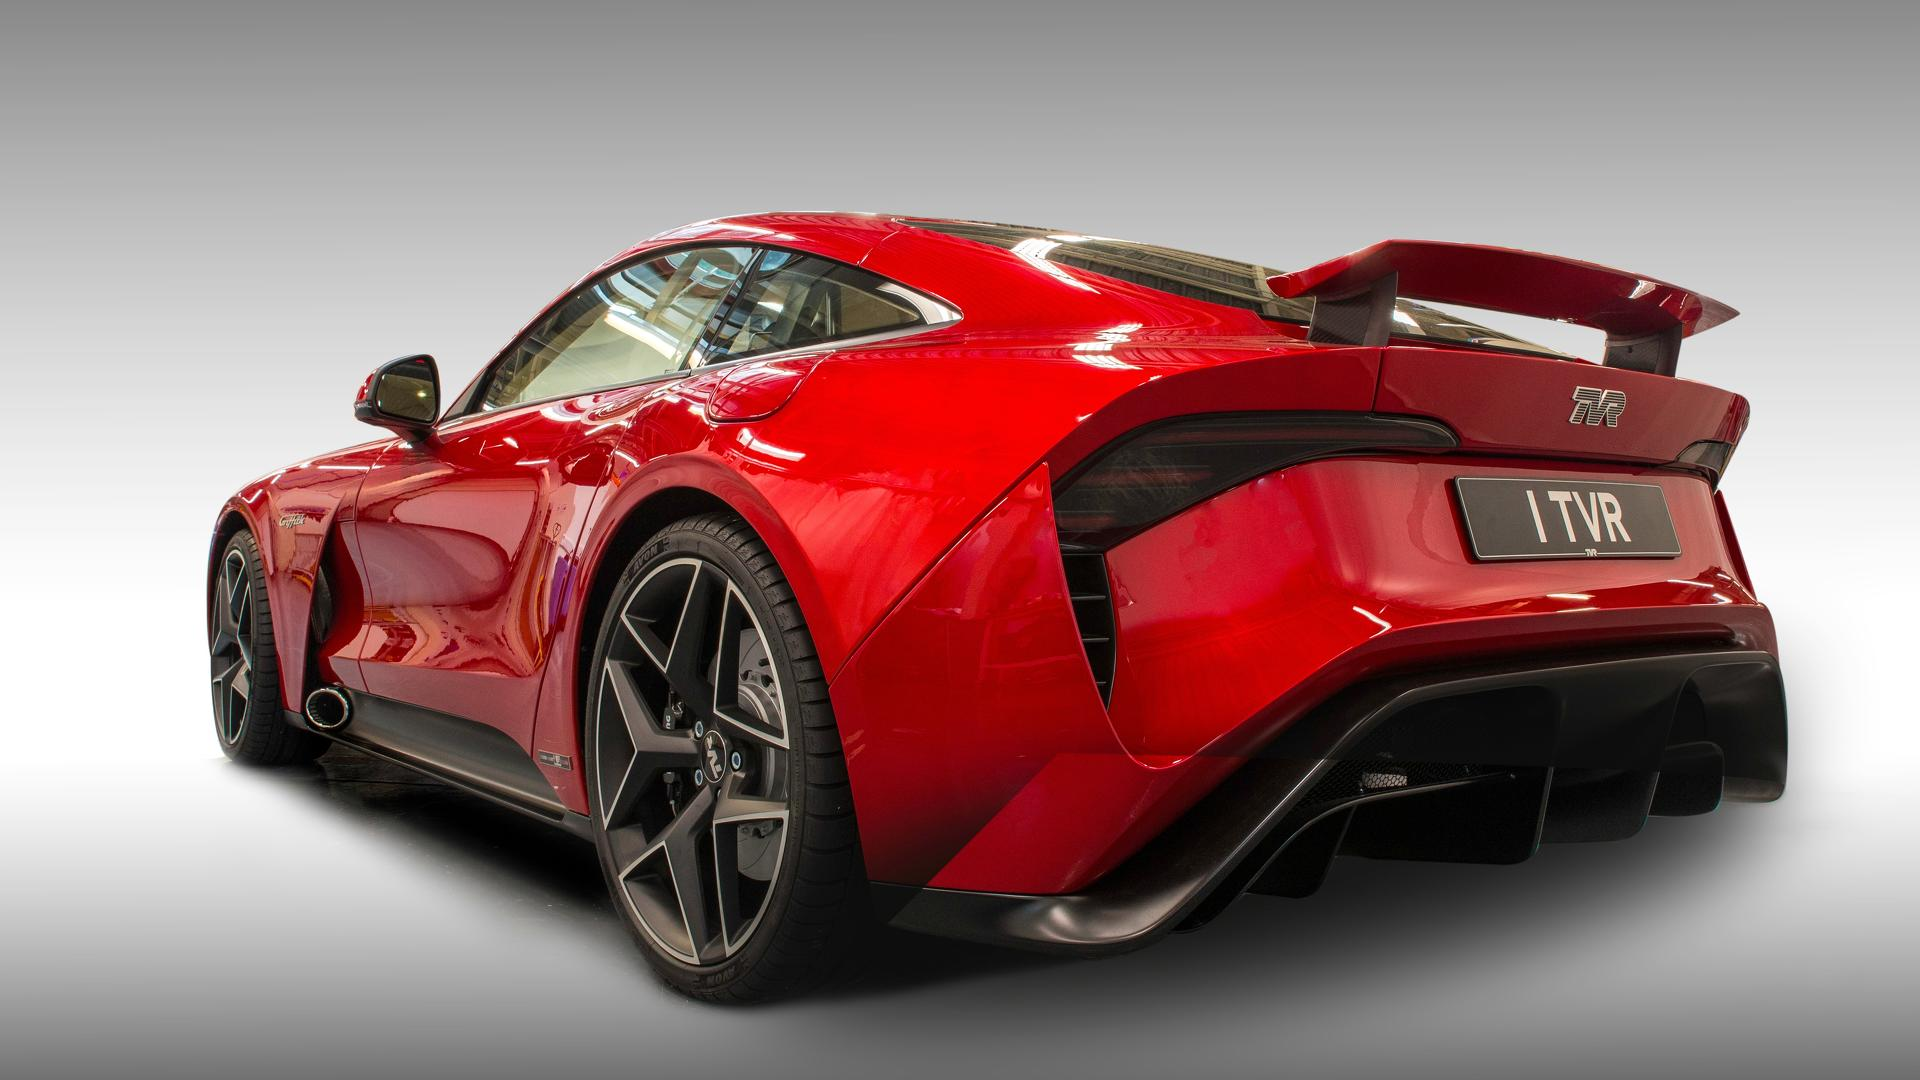 all new tvr griffith unveiled at goodwood revival tvr is back with a rwd. Black Bedroom Furniture Sets. Home Design Ideas